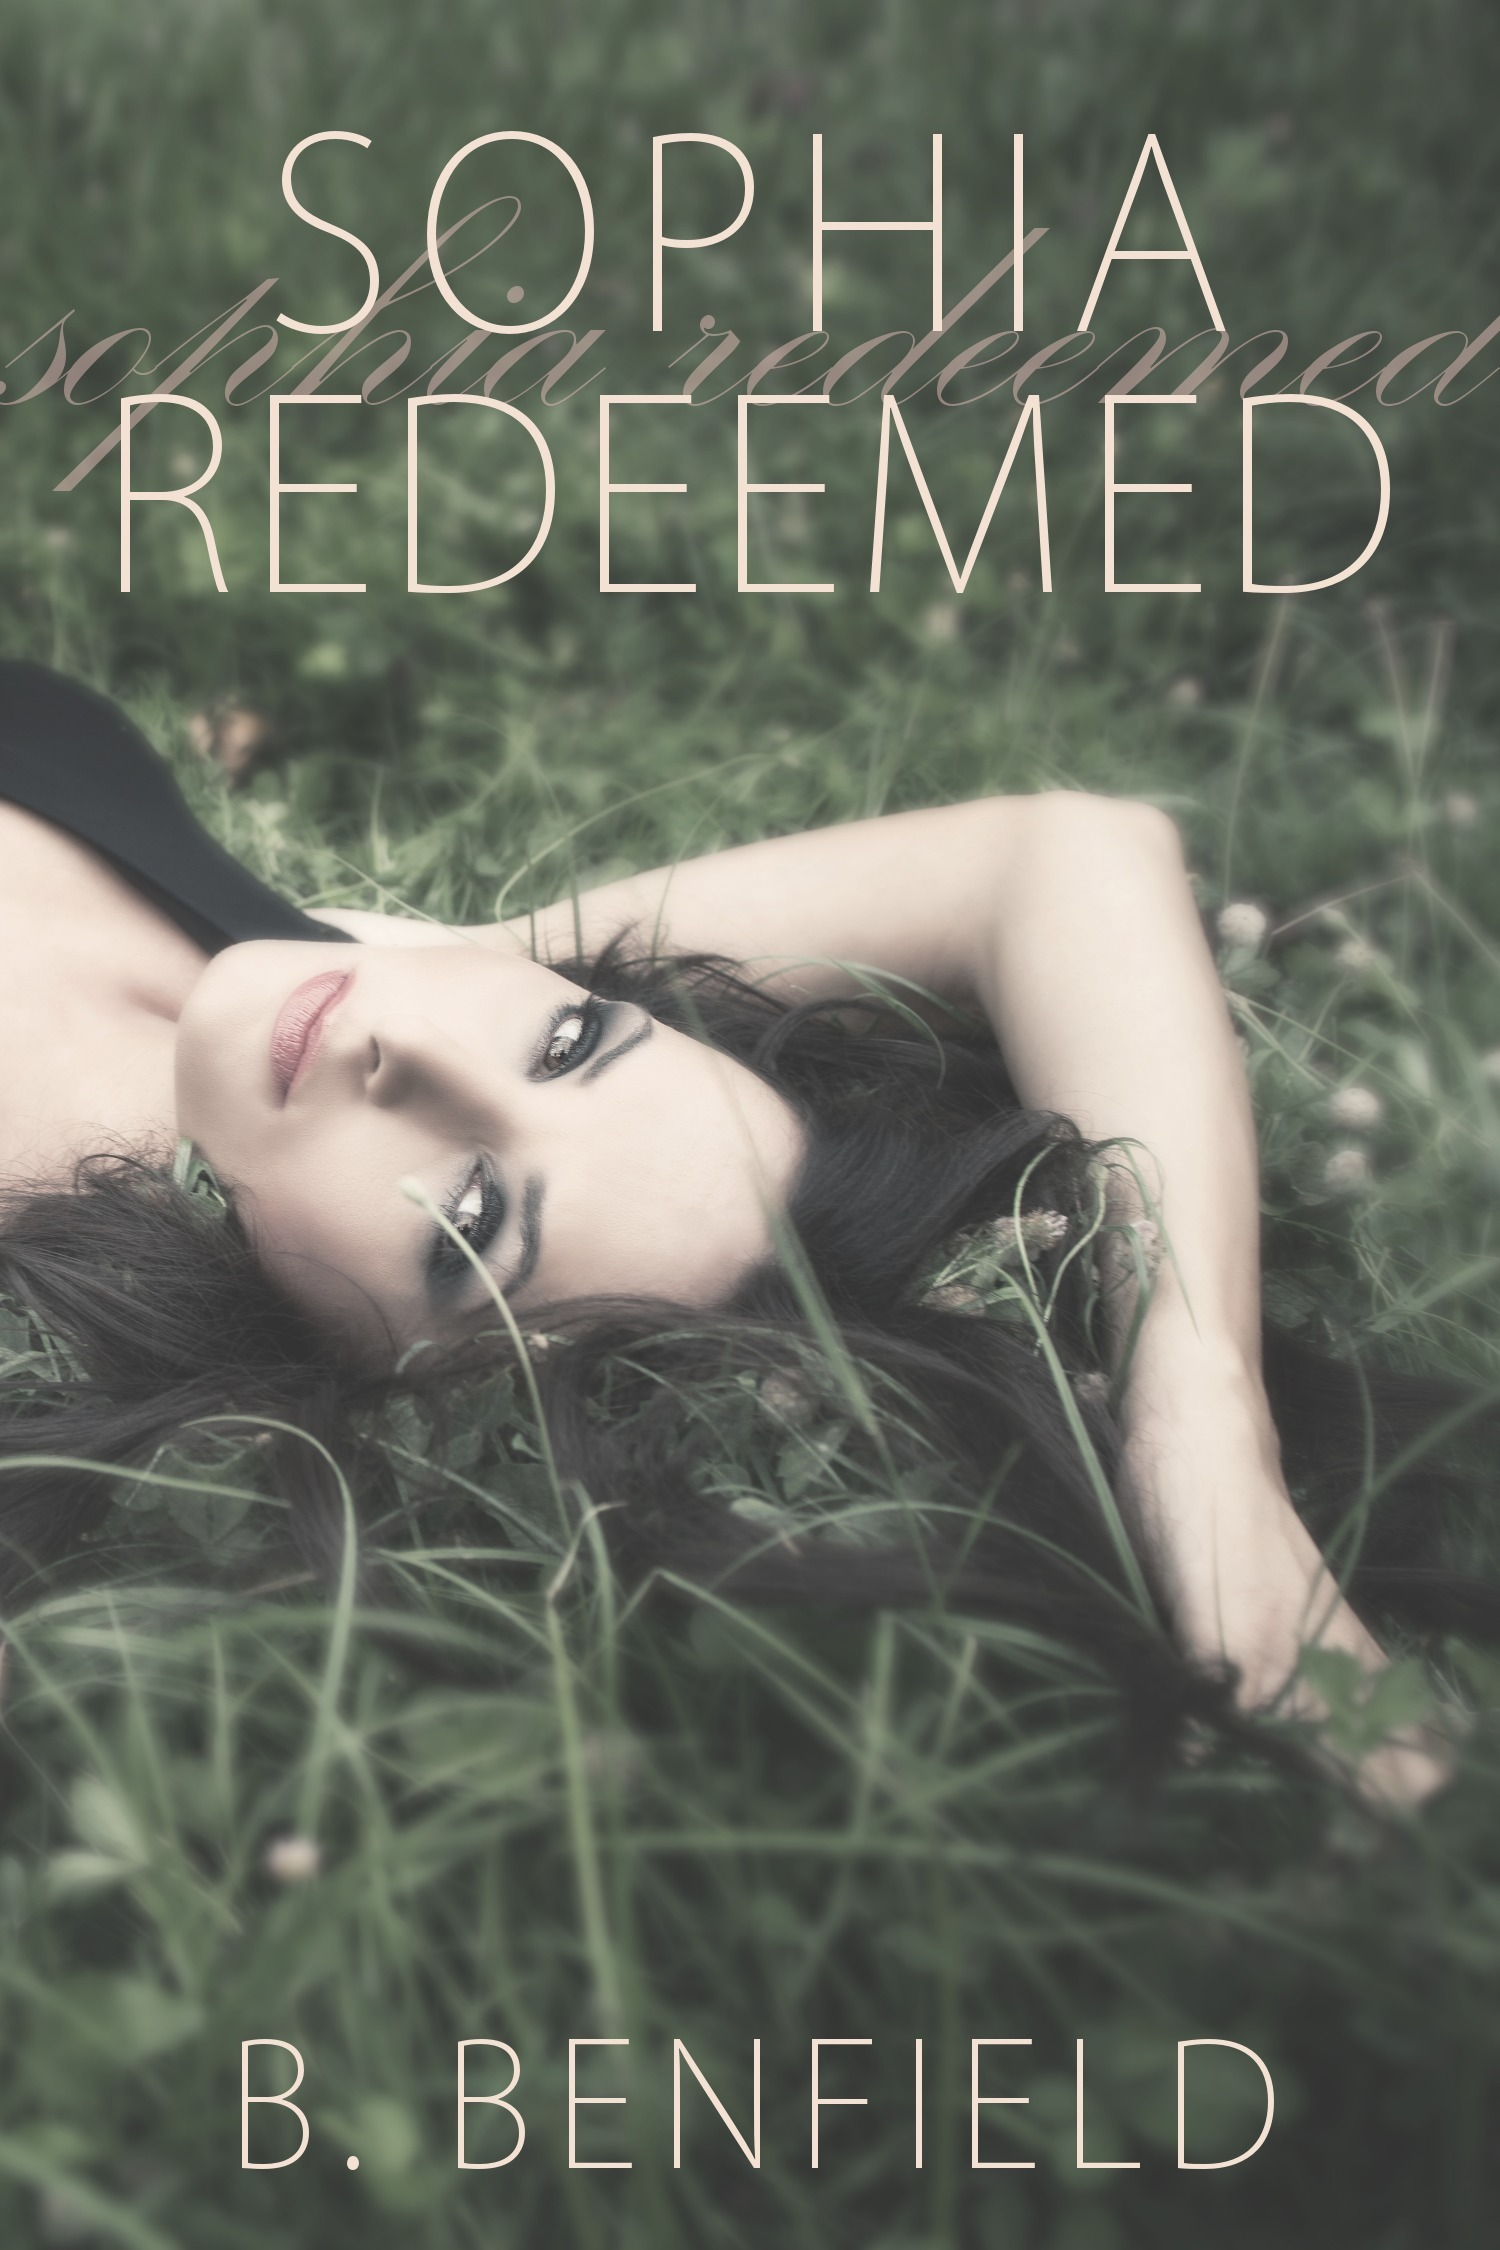 Sophia Redeemed B. Benfield